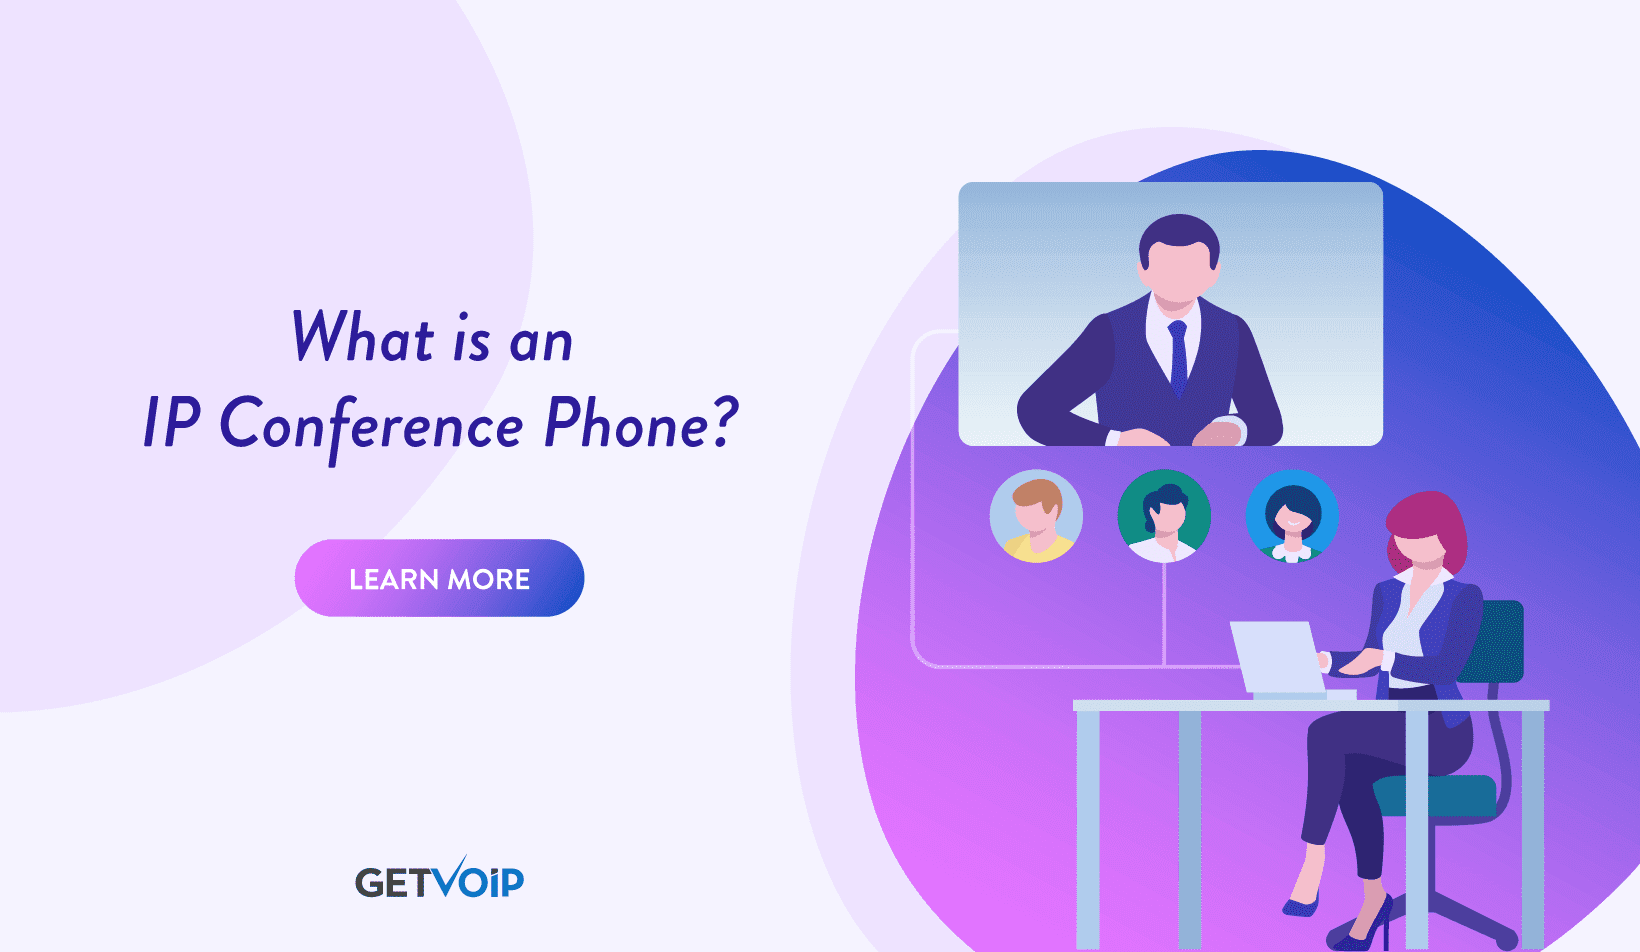 What is an IP Conference Phone?